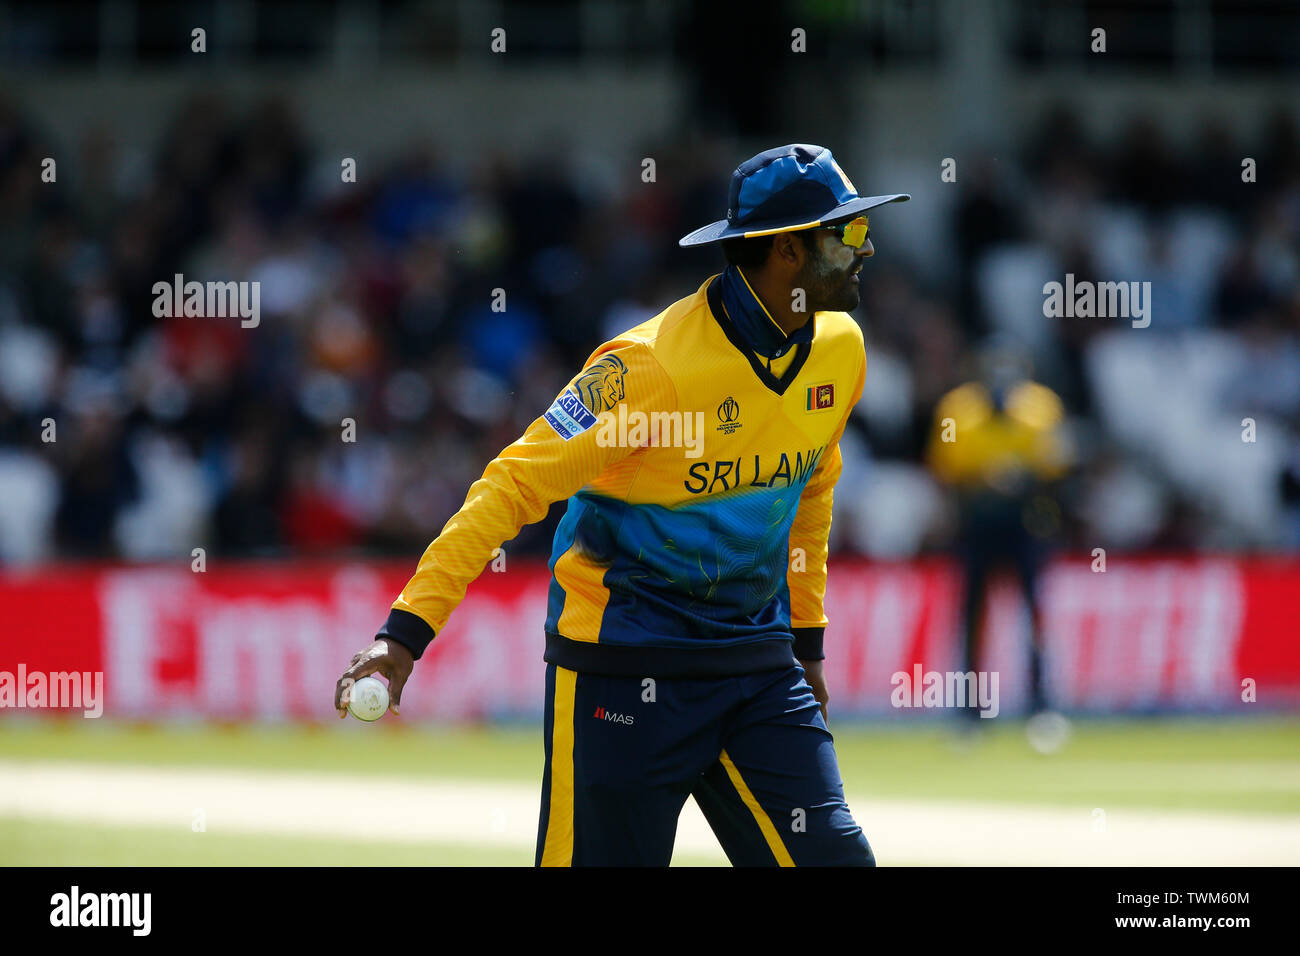 Emerald Headingley, Leeds, Yorkshire, UK. 21st June, 2019. ICC World Cup Cricket, England versus Sri Lanka; Thisara Perera of Sri Lanka Credit: Action Plus Sports/Alamy Live News Stock Photo